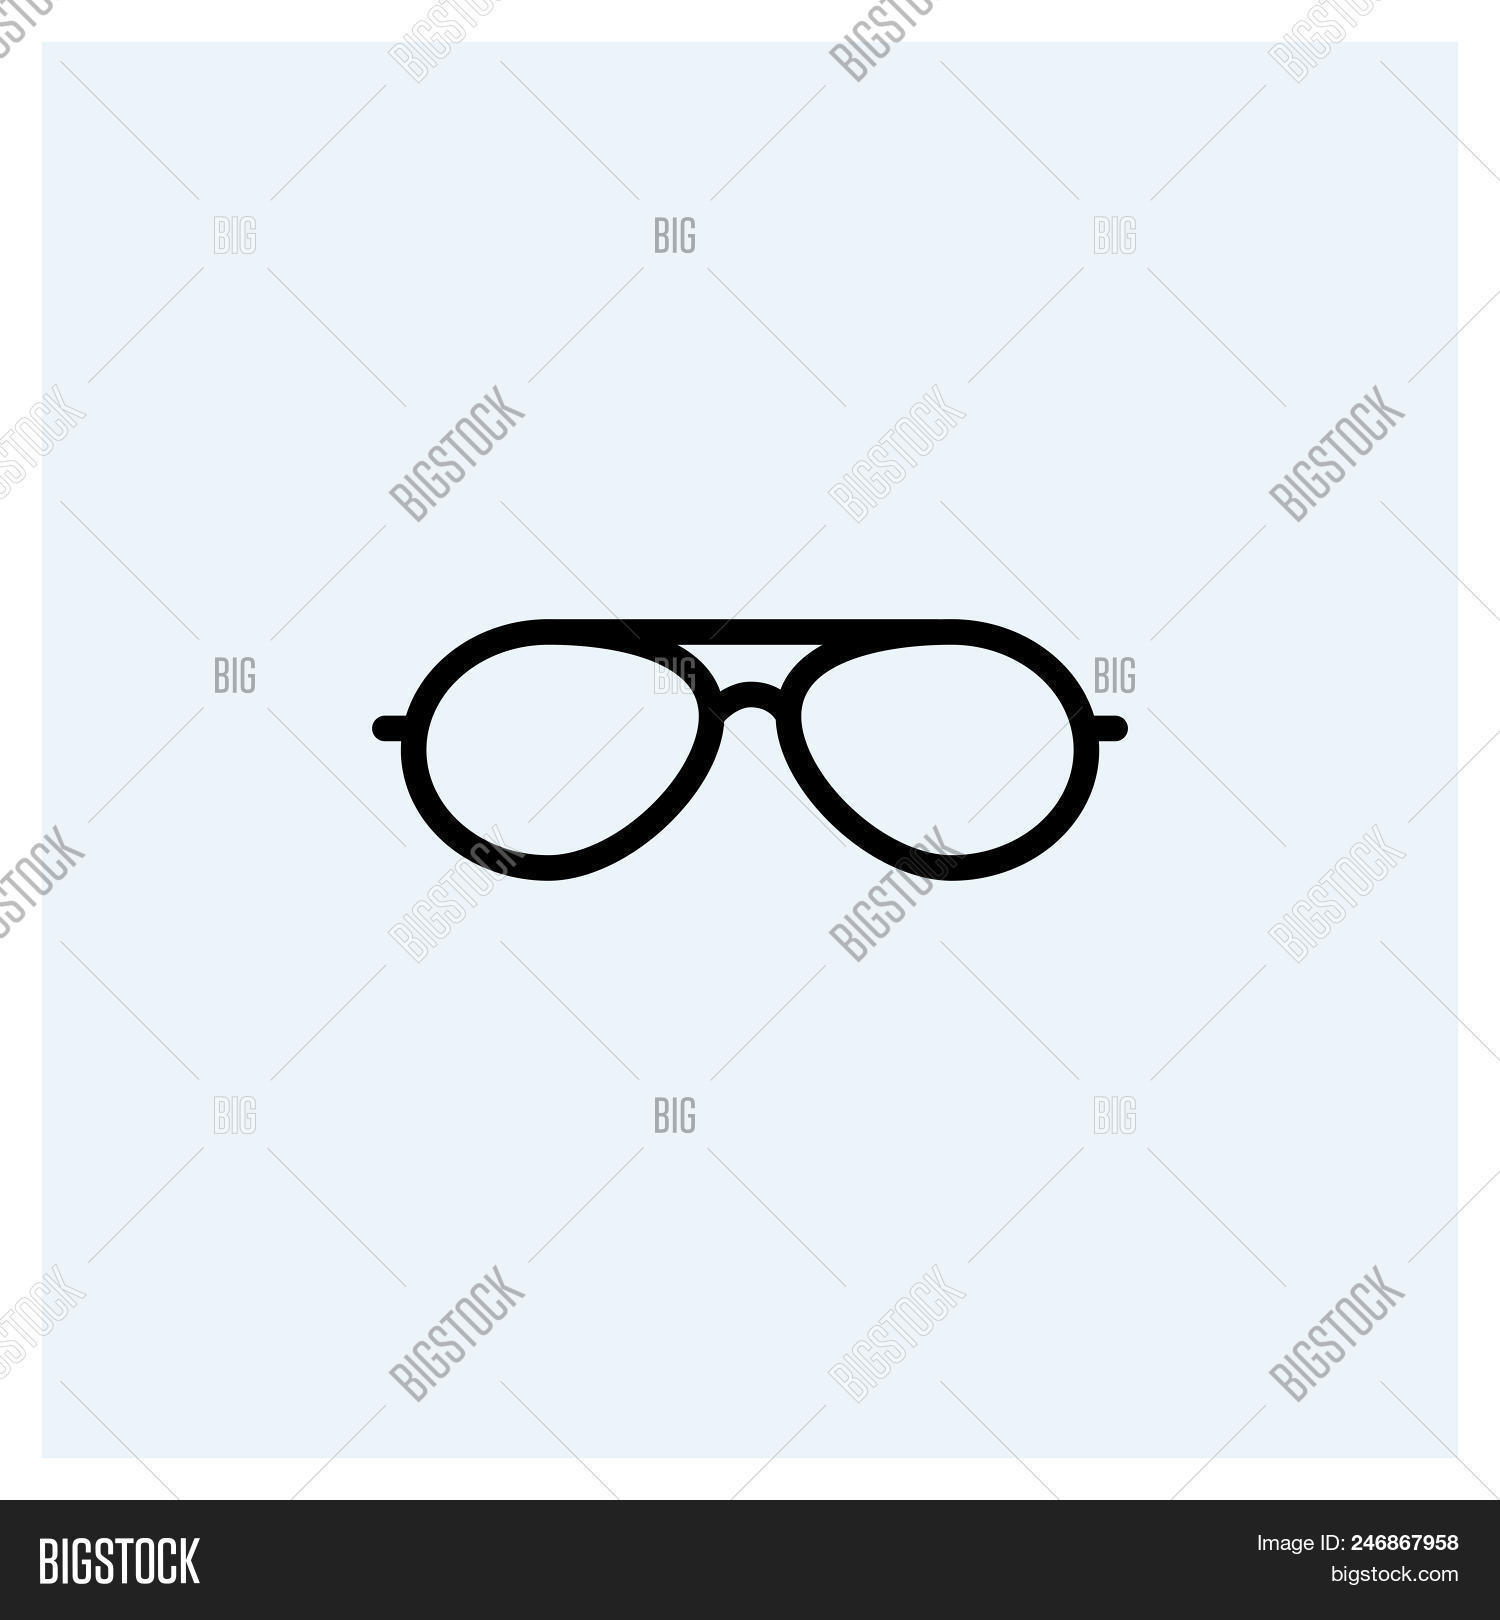 application,art,corrective,design,elements,eye.,eyeglasses,eyesight,fashion,flat,frame,geek,glasses,graphic,hipster,icon,illustration,isolated,lens,modern,nerd,object,old,optic,optical,plastic,retro,see,sight,sign,simple,site,specs,spectacles,style,sunglasses,symbol,vector,view,vintage,vision,wear,web,website